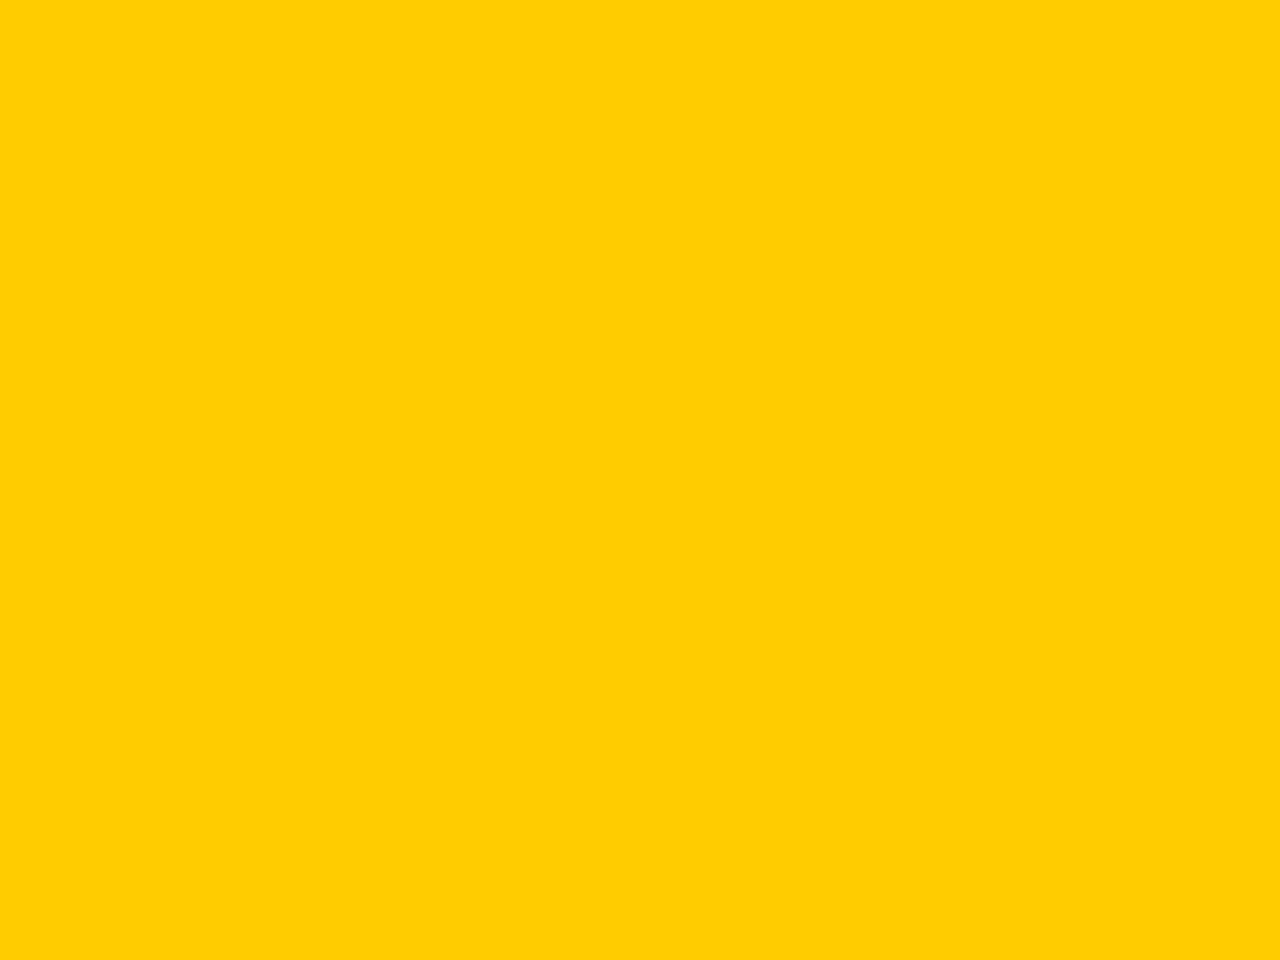 1280x960 Tangerine Yellow Solid Color Background